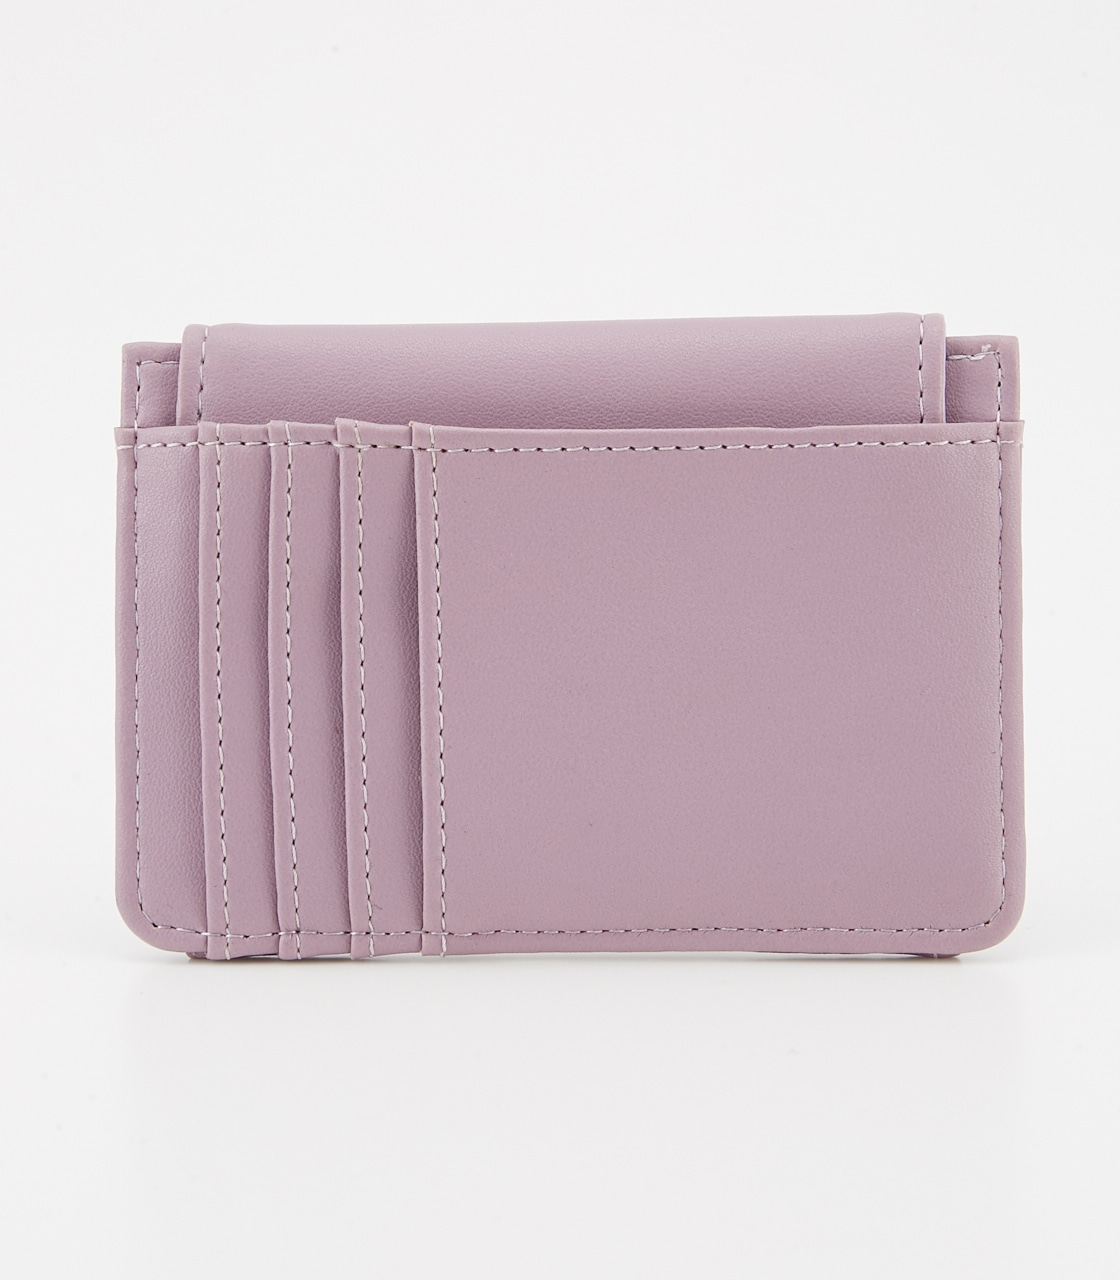 【AZUL BY MOUSSY】COIN+CARD PURSE 詳細画像 L/PUR 2